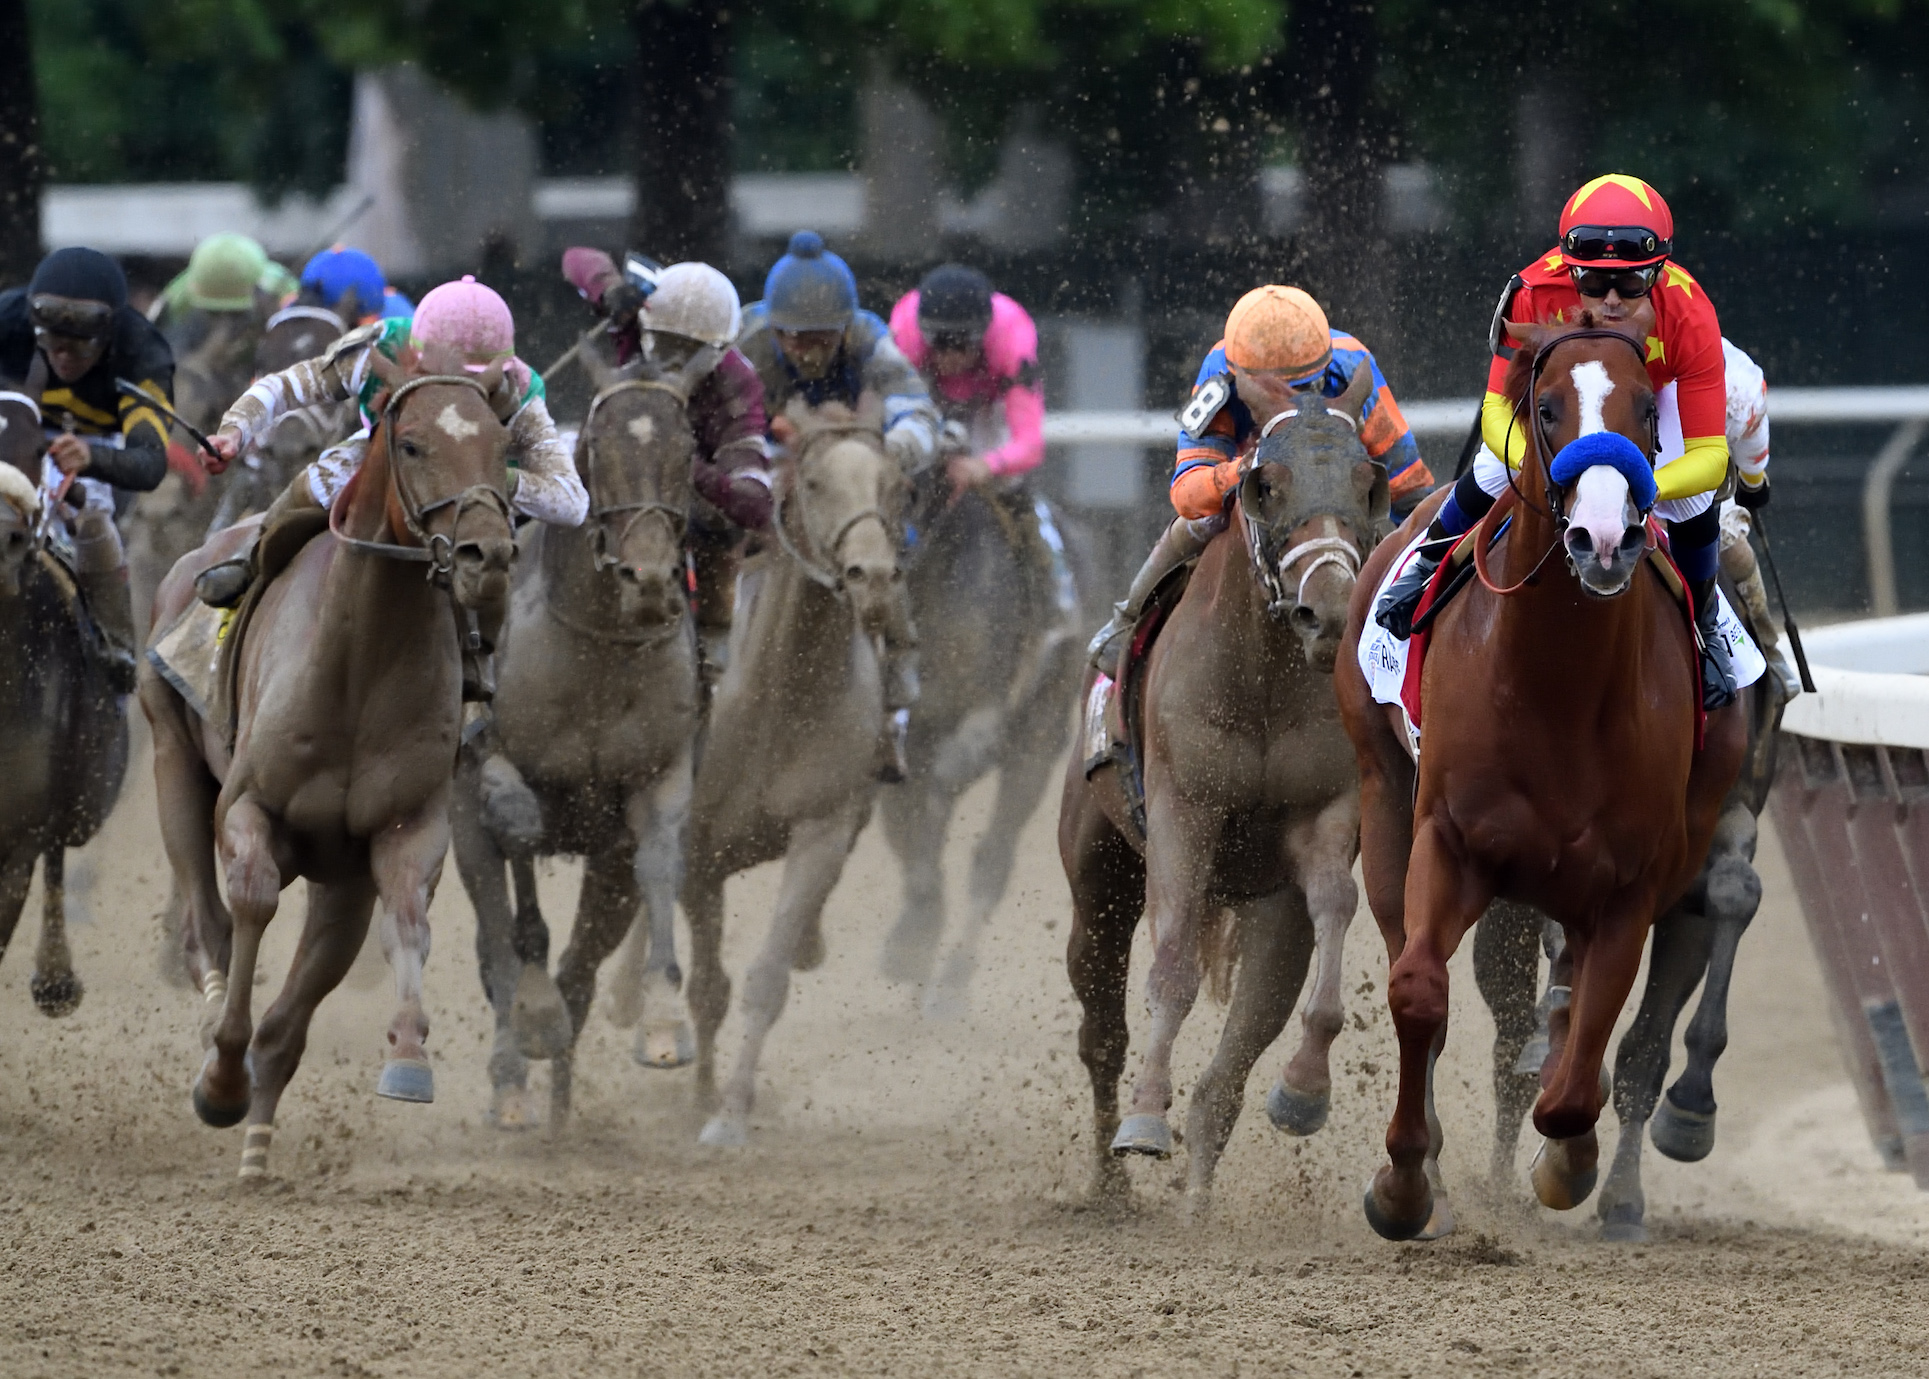 In charge: Mike Smith and Justify are still poised and in full control entering the stretch as the other runners struggle desperately to try to challenge. Photo: Rob Mauhar/NYRA.com